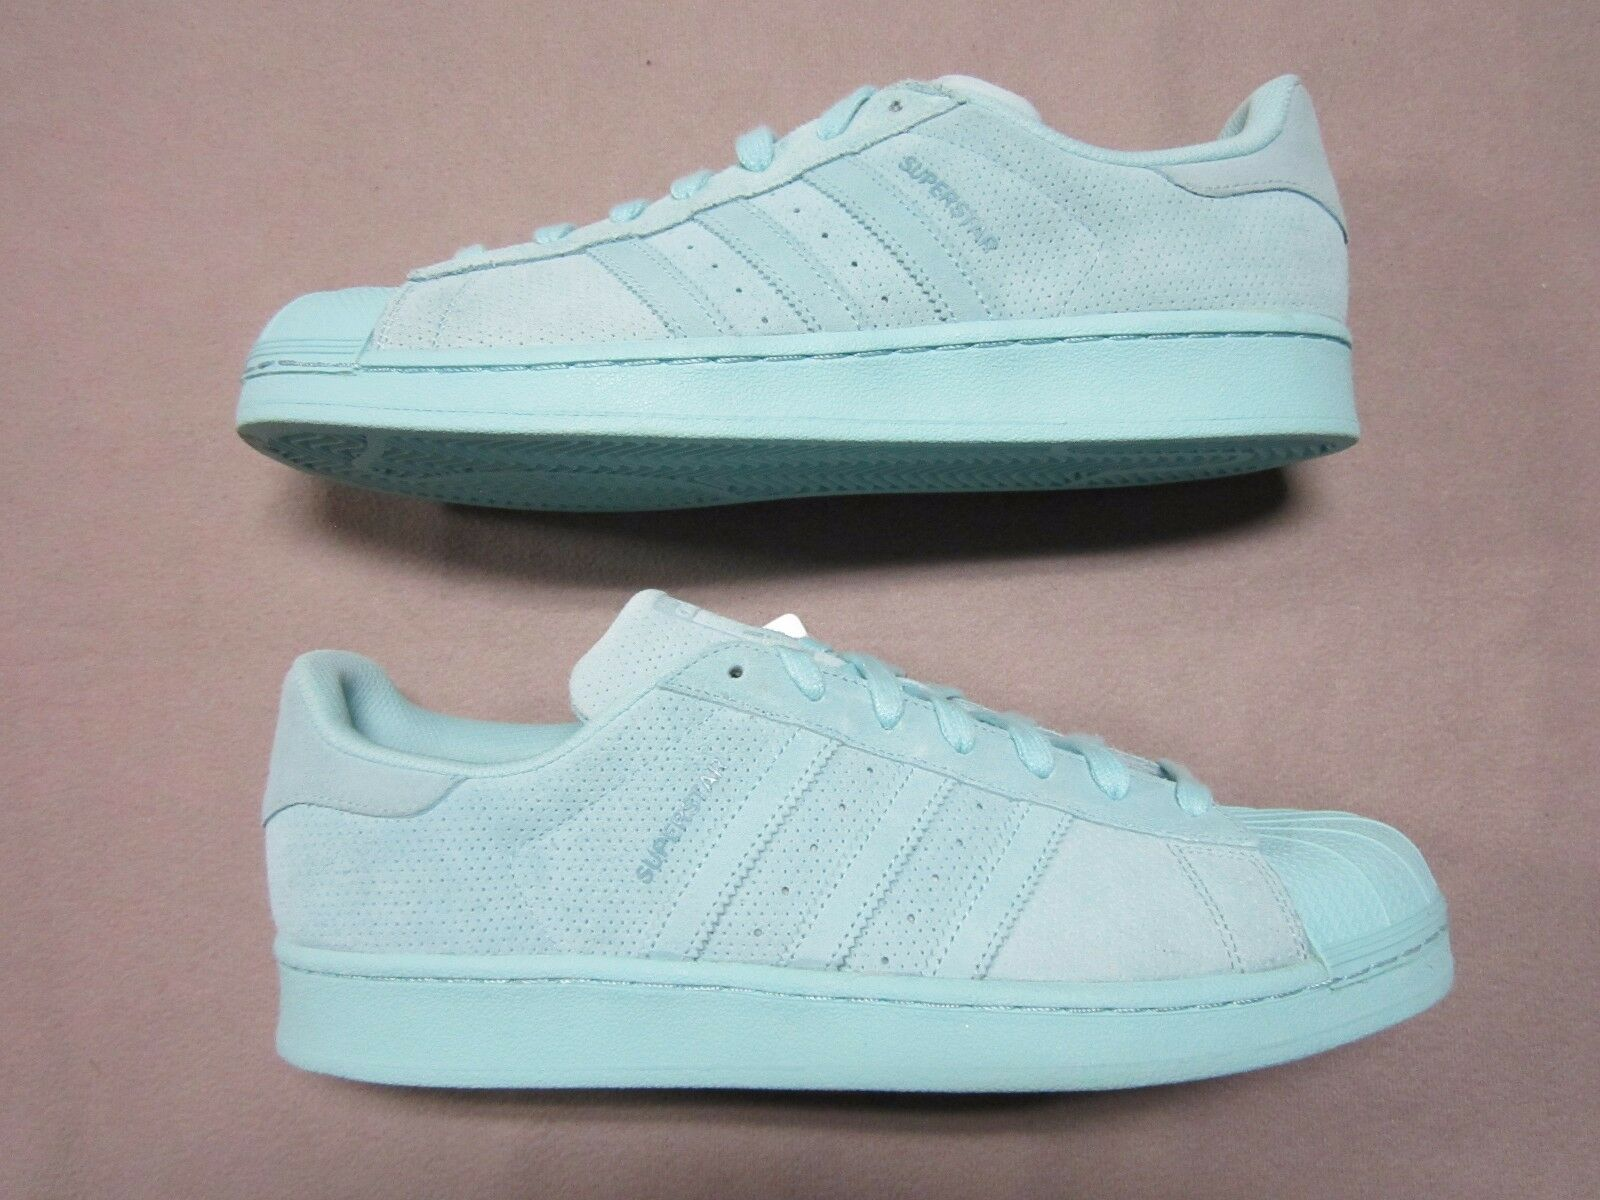 ADIDAS ORIGINAL MENS SUPERSTAR MINT BLUE AQUA SUEDE SNEAKERS SHOES SIZE 11.5 NEW